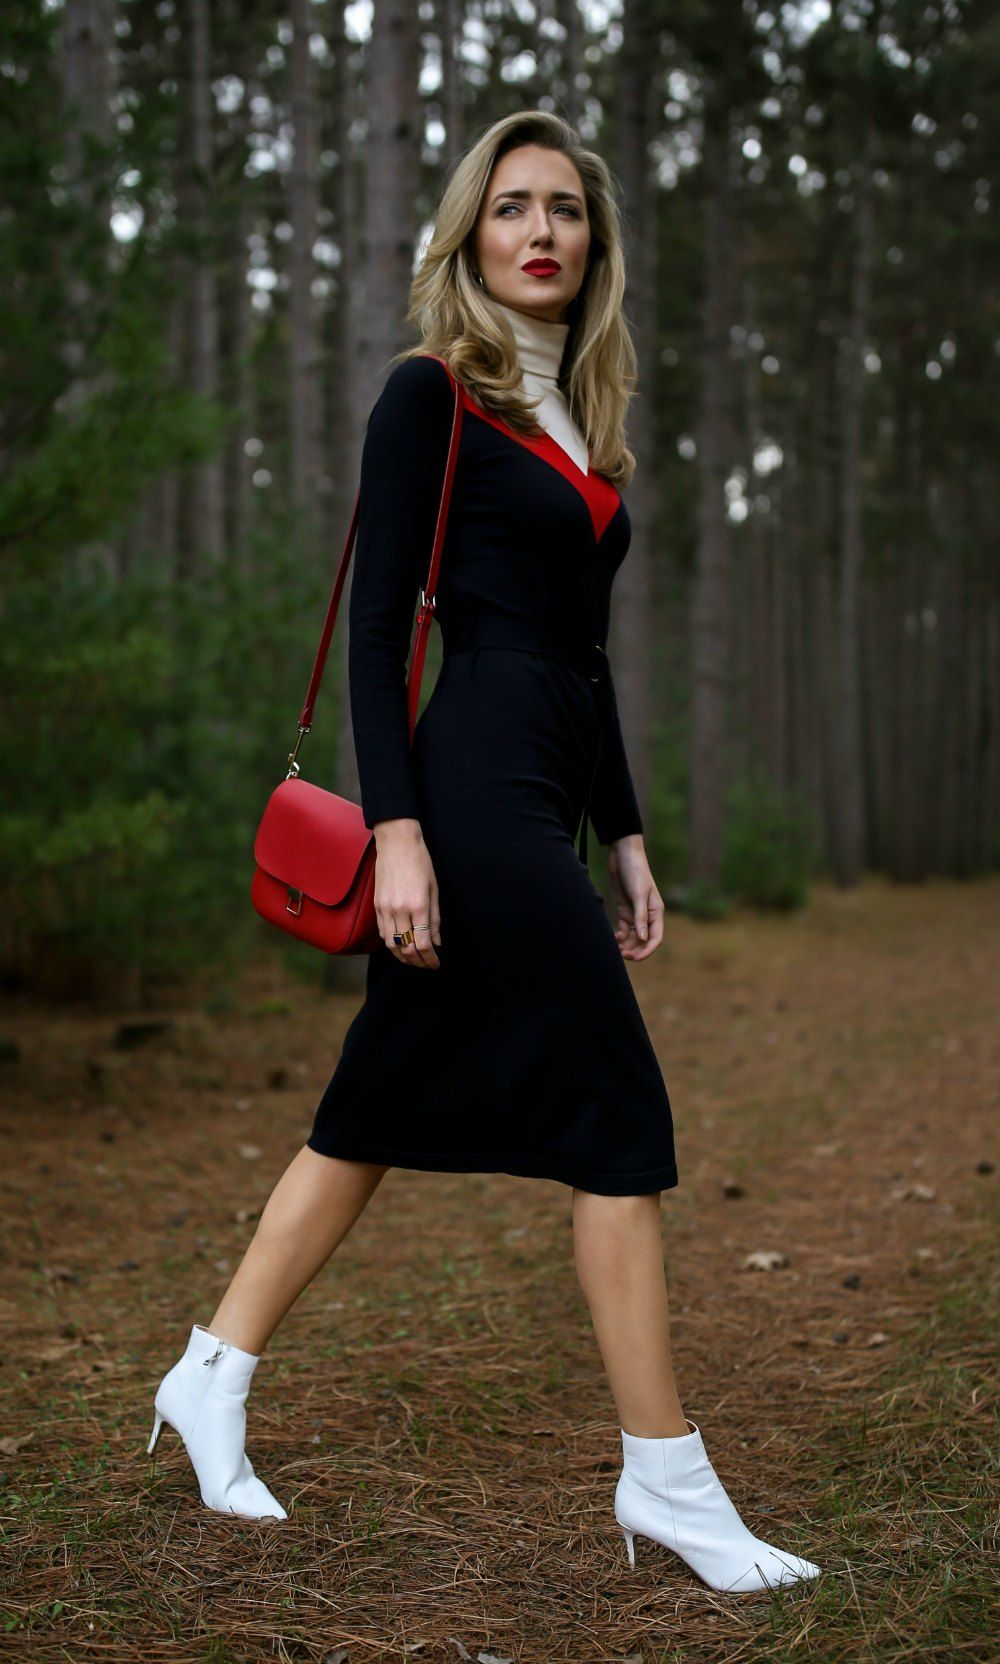 30 Dresses In 30 Days Ski Trip Turtleneck Sweater Midi Dress White Leather Ankle Boots Red Leather Cross Body Blogger Style Winter Fashion Blogger Dress [ 1664 x 1000 Pixel ]